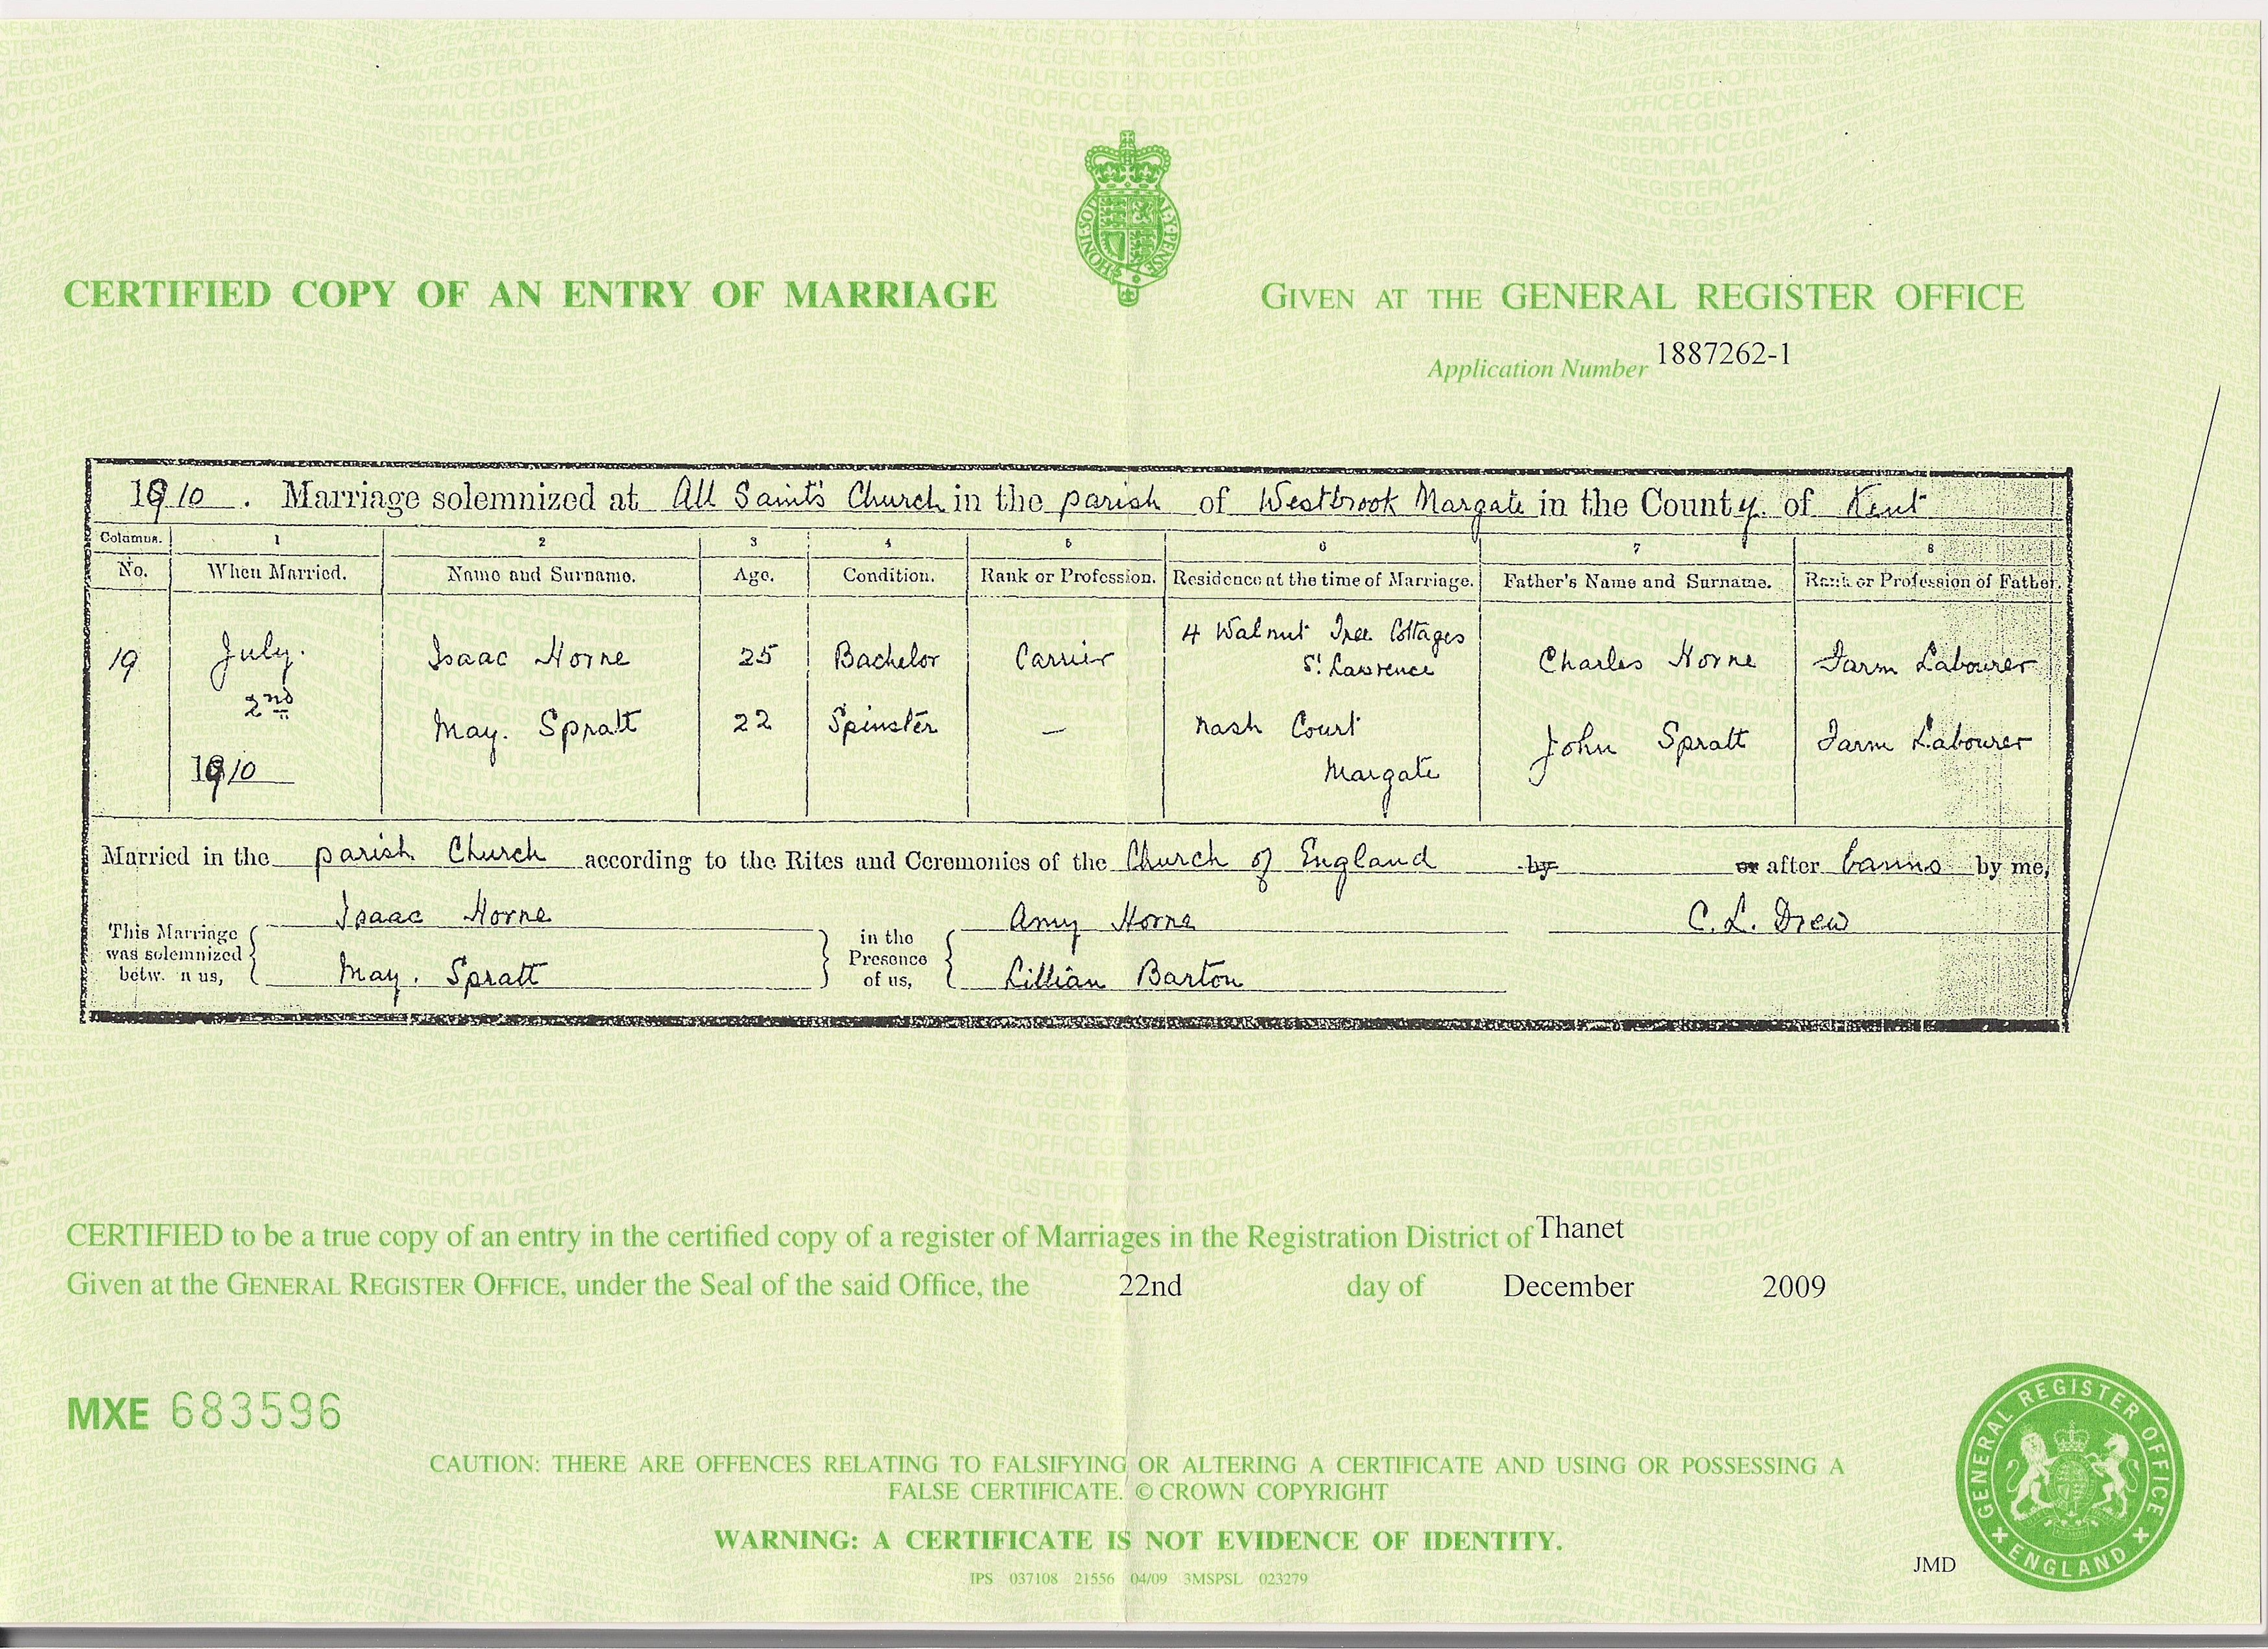 Isaac Horne - May Spratt - marriage certificate